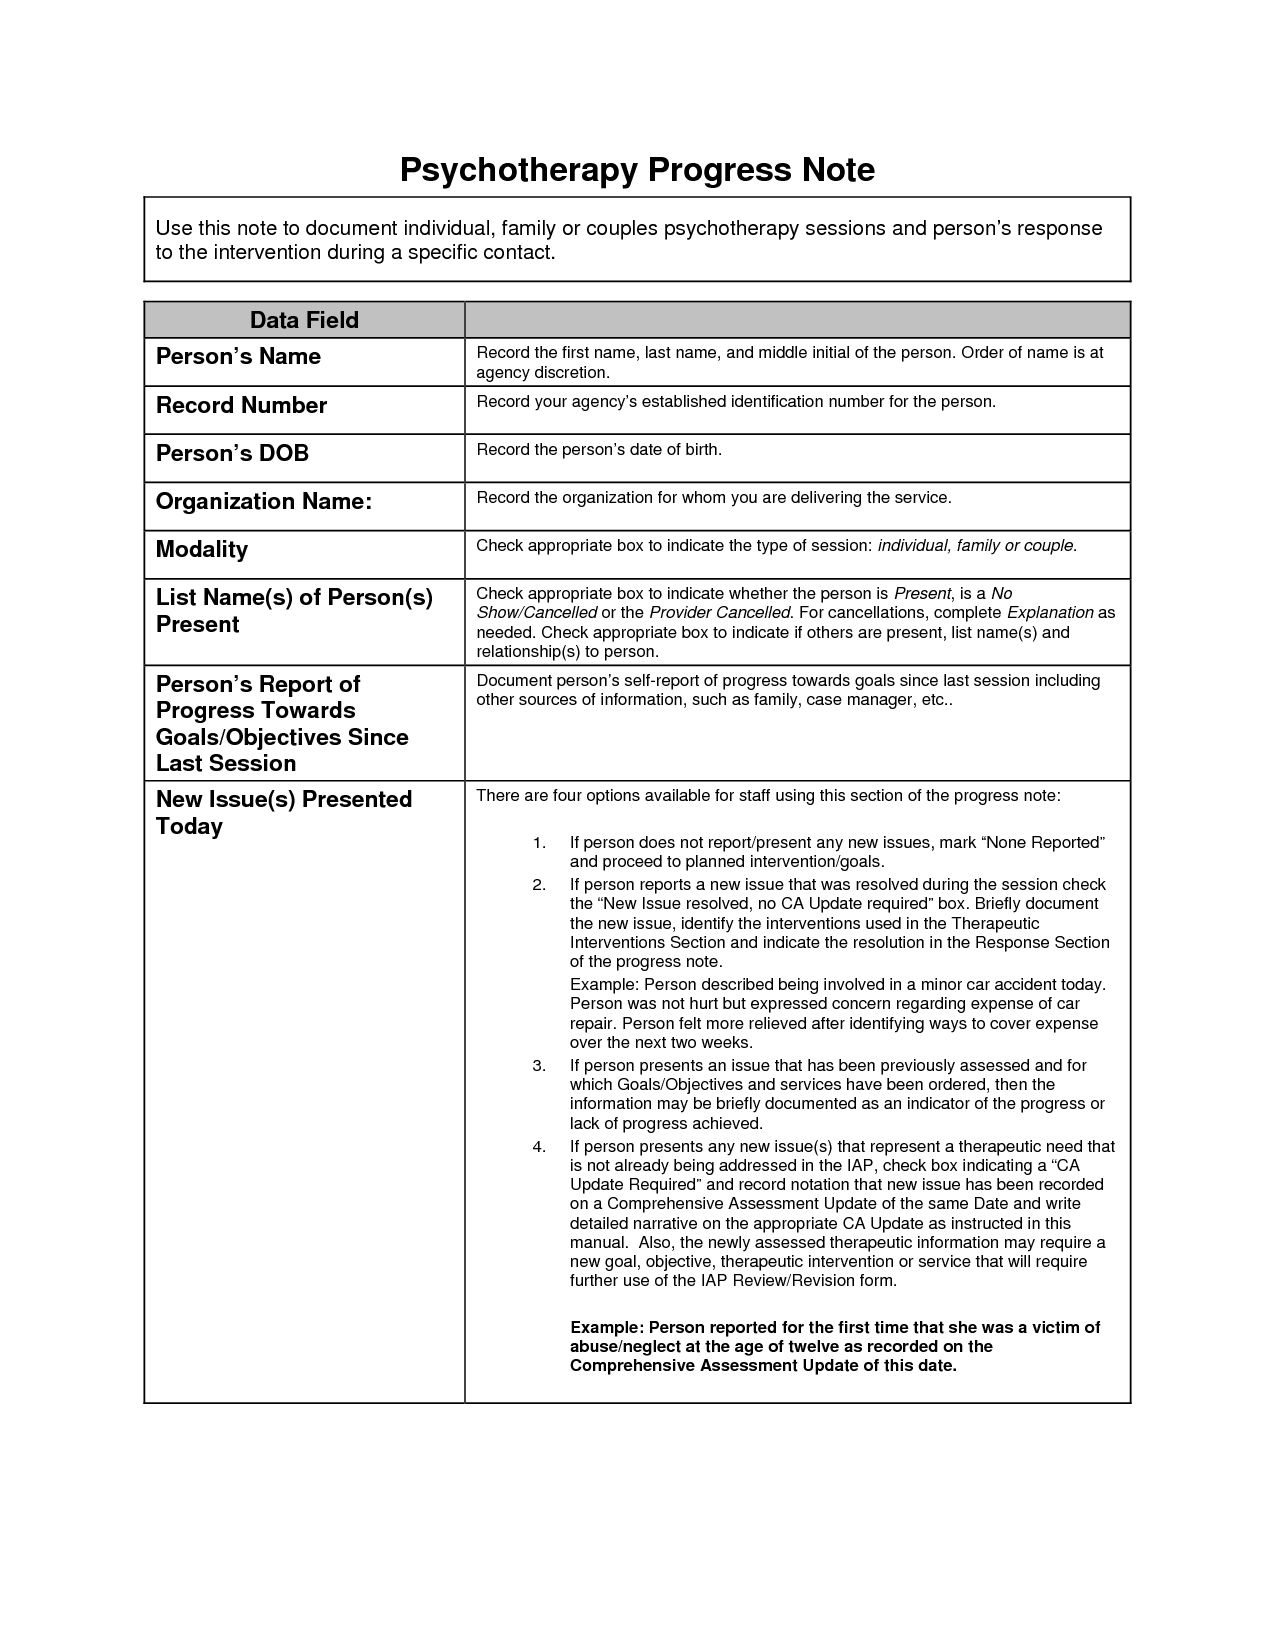 000 Awful Counseling Progres Note Template Image  Physical Therapy Pdf FreeFull